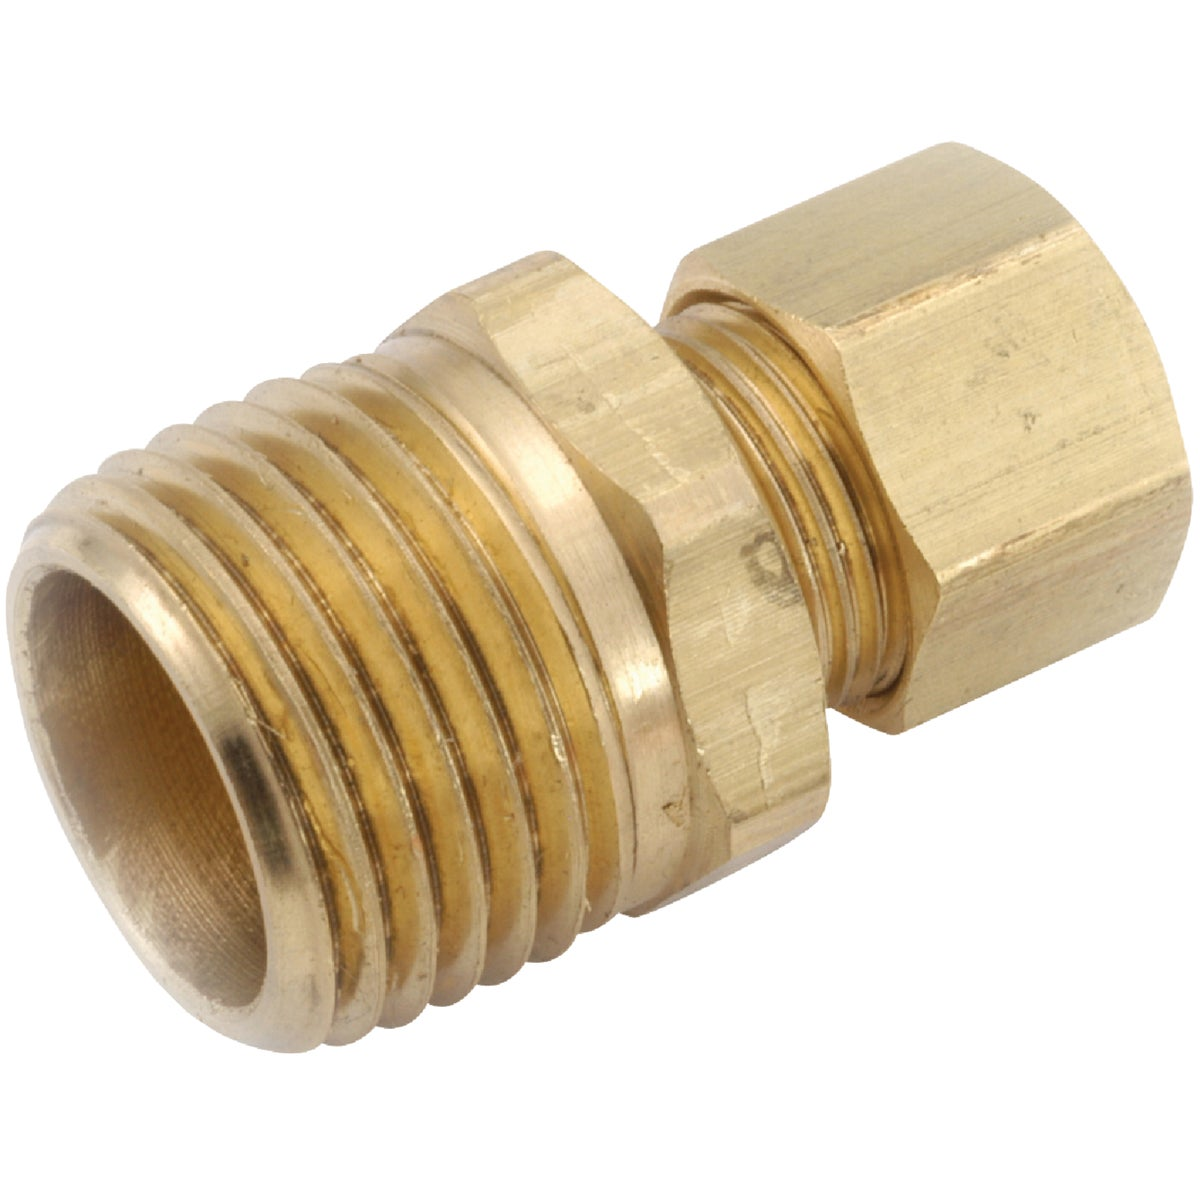 3/16X1/8 MALE CONNECTOR - 750068-0302 by Anderson Metals Corp